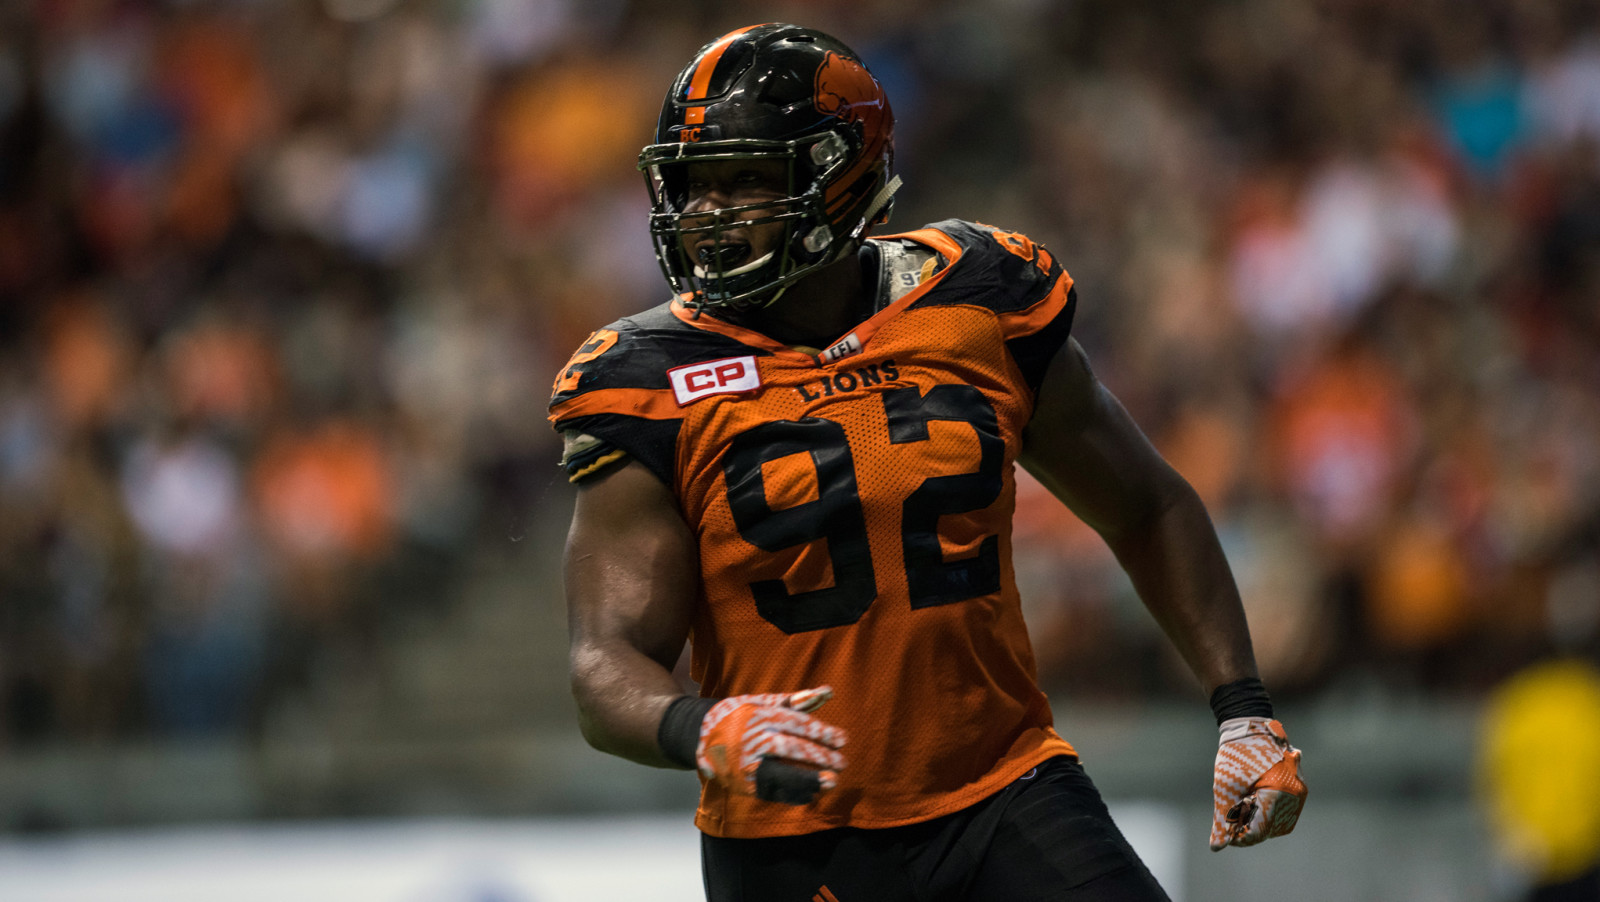 Lions lock up DL Bryant Turner Jr  - CFL ca